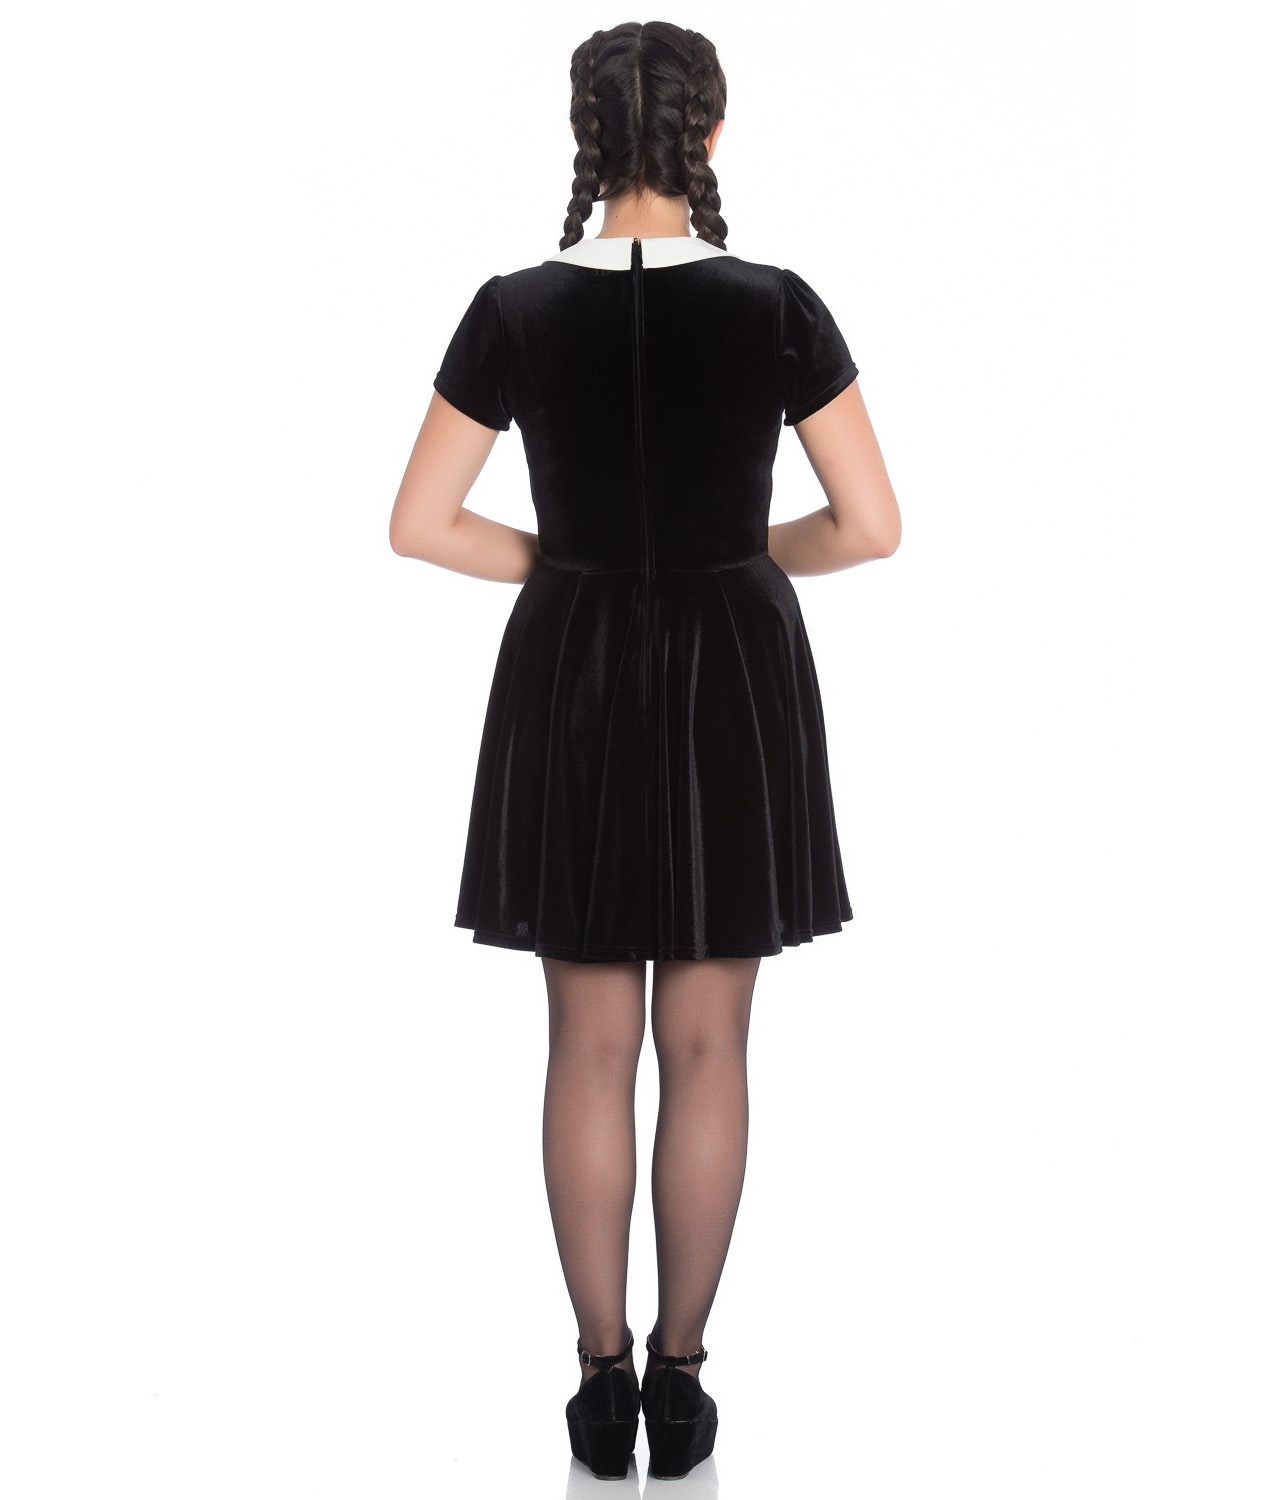 Hell-Bunny-Gothic-Mini-Skater-Dress-MISS-MUFFET-Spiders-Black-Velvet-All-Sizes thumbnail 21